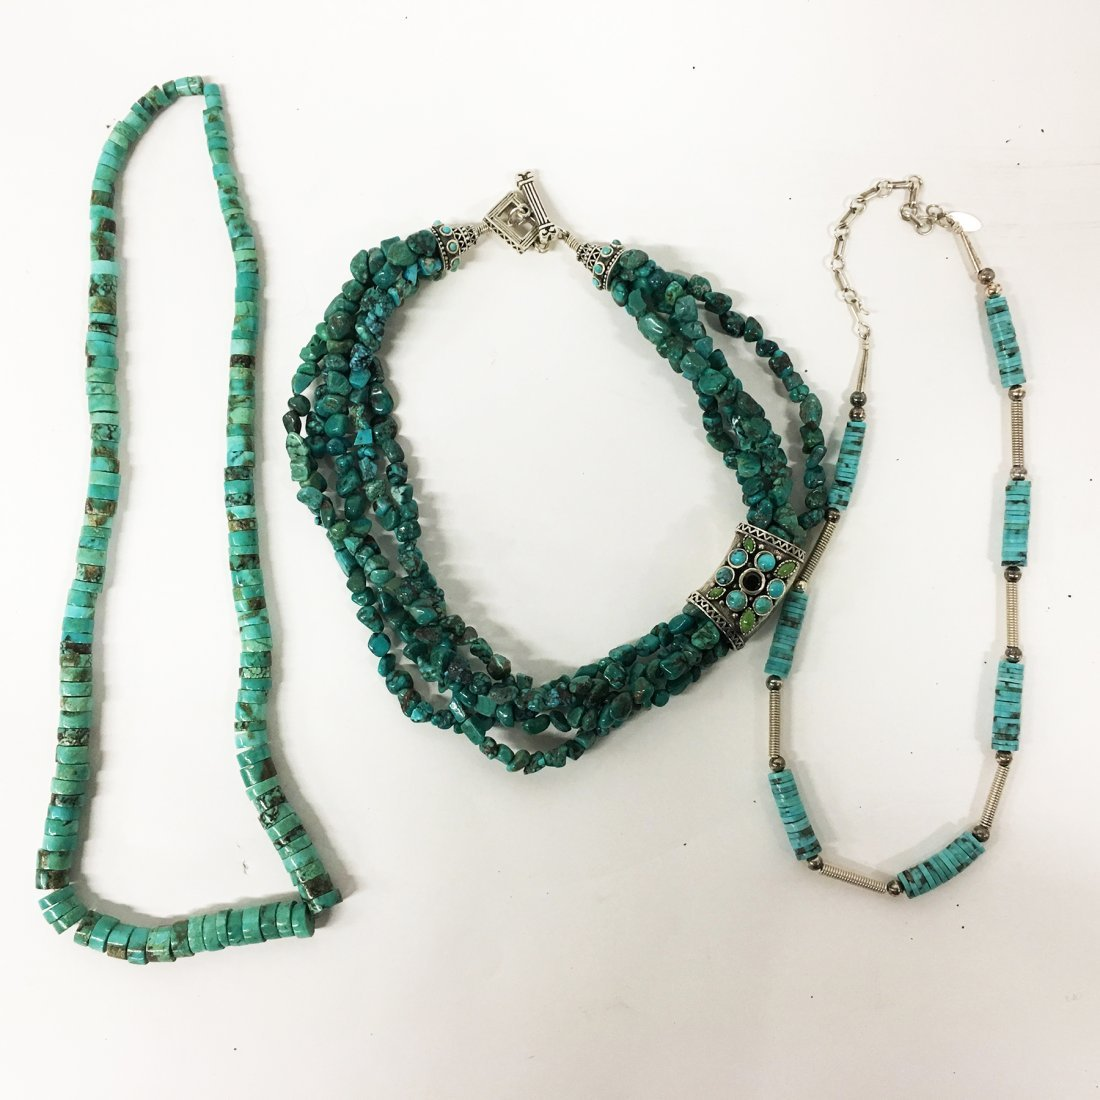 Turquoise and Sterling necklaces with gemstone accents